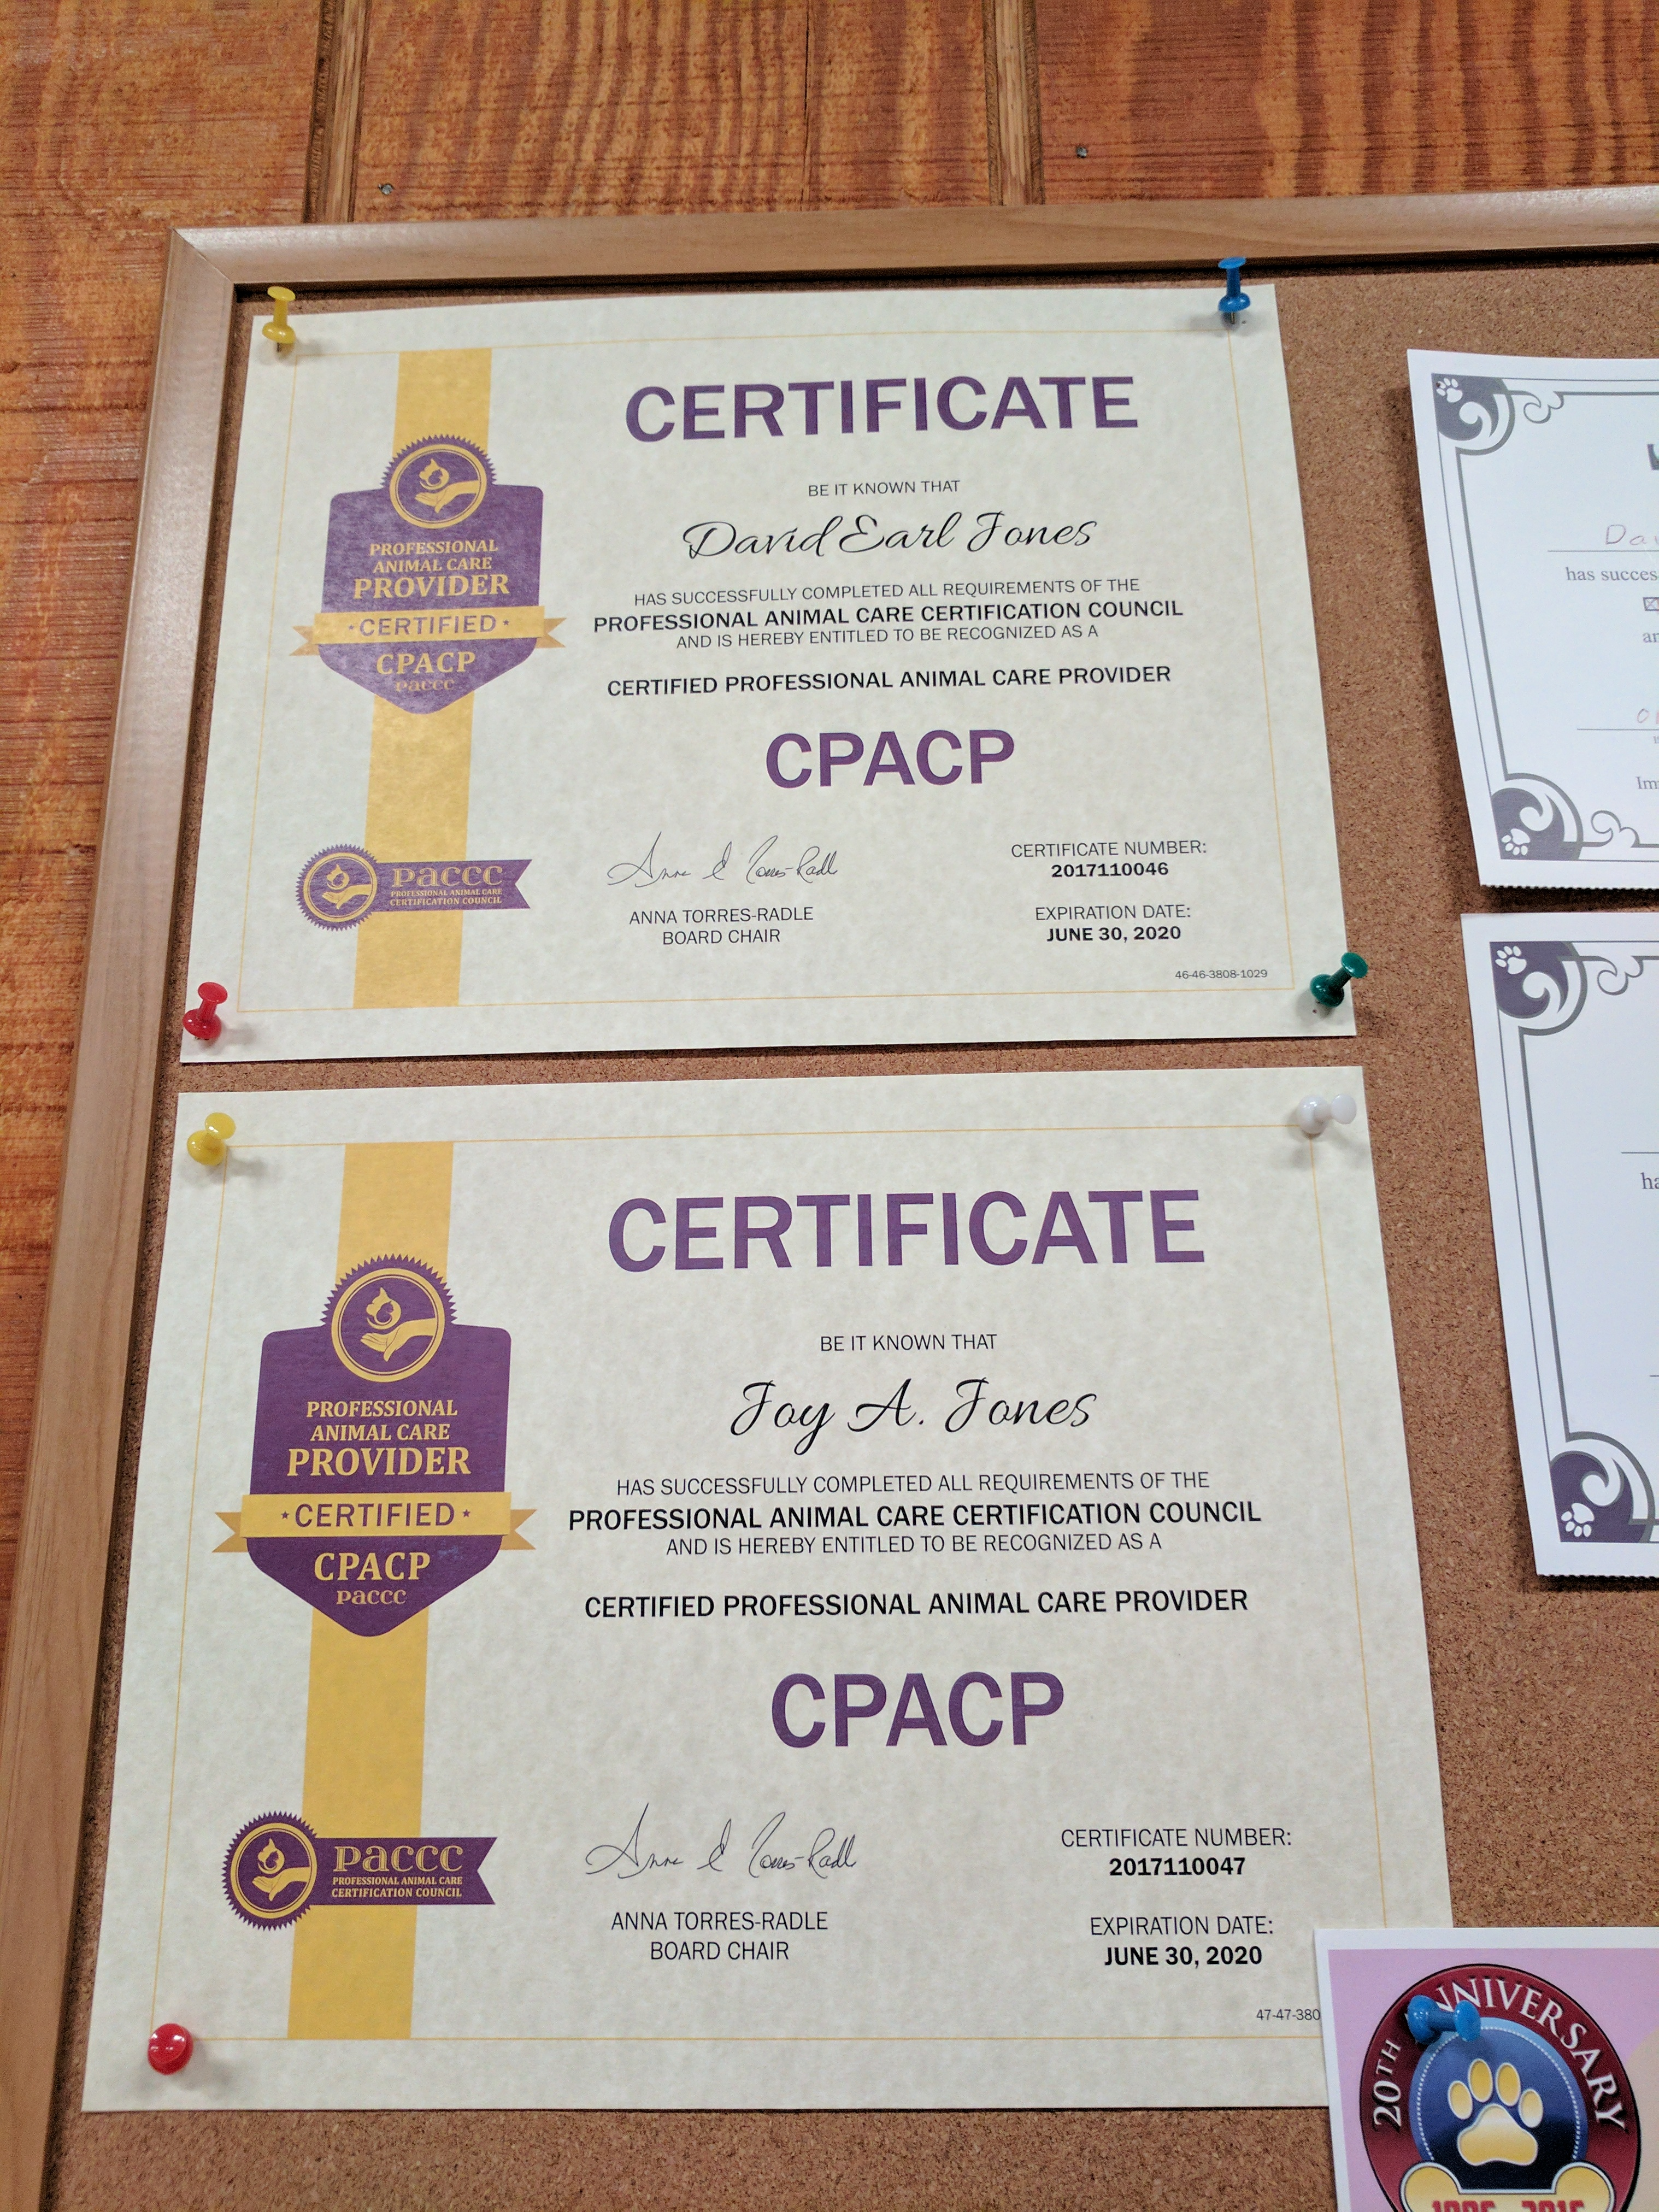 CPACP certs